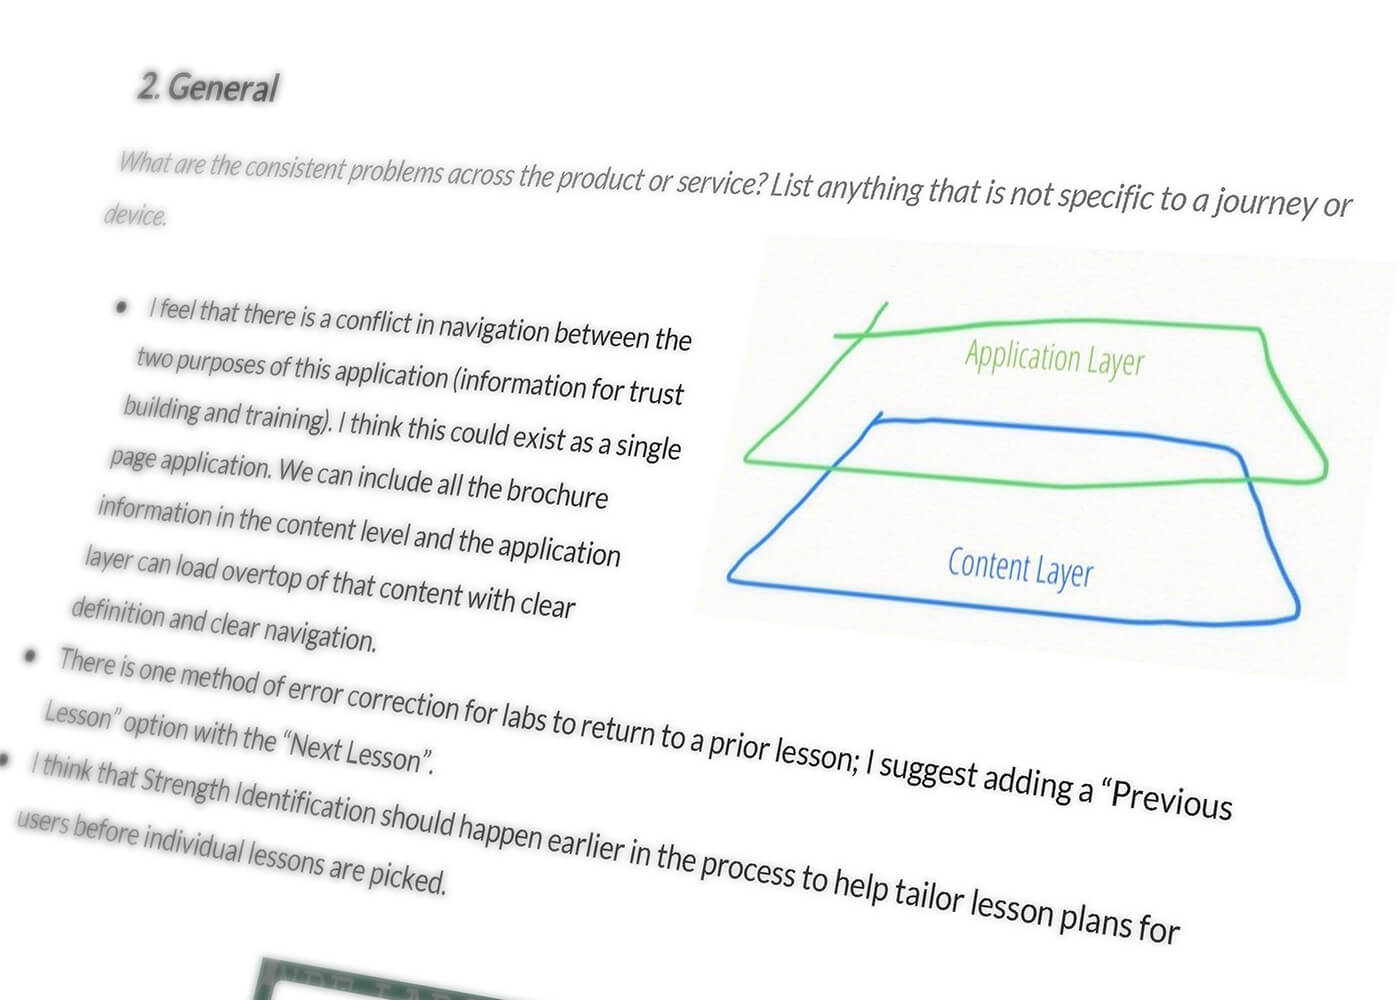 An excerpt from the Usability Design Review document recommending an application layer and a content layer